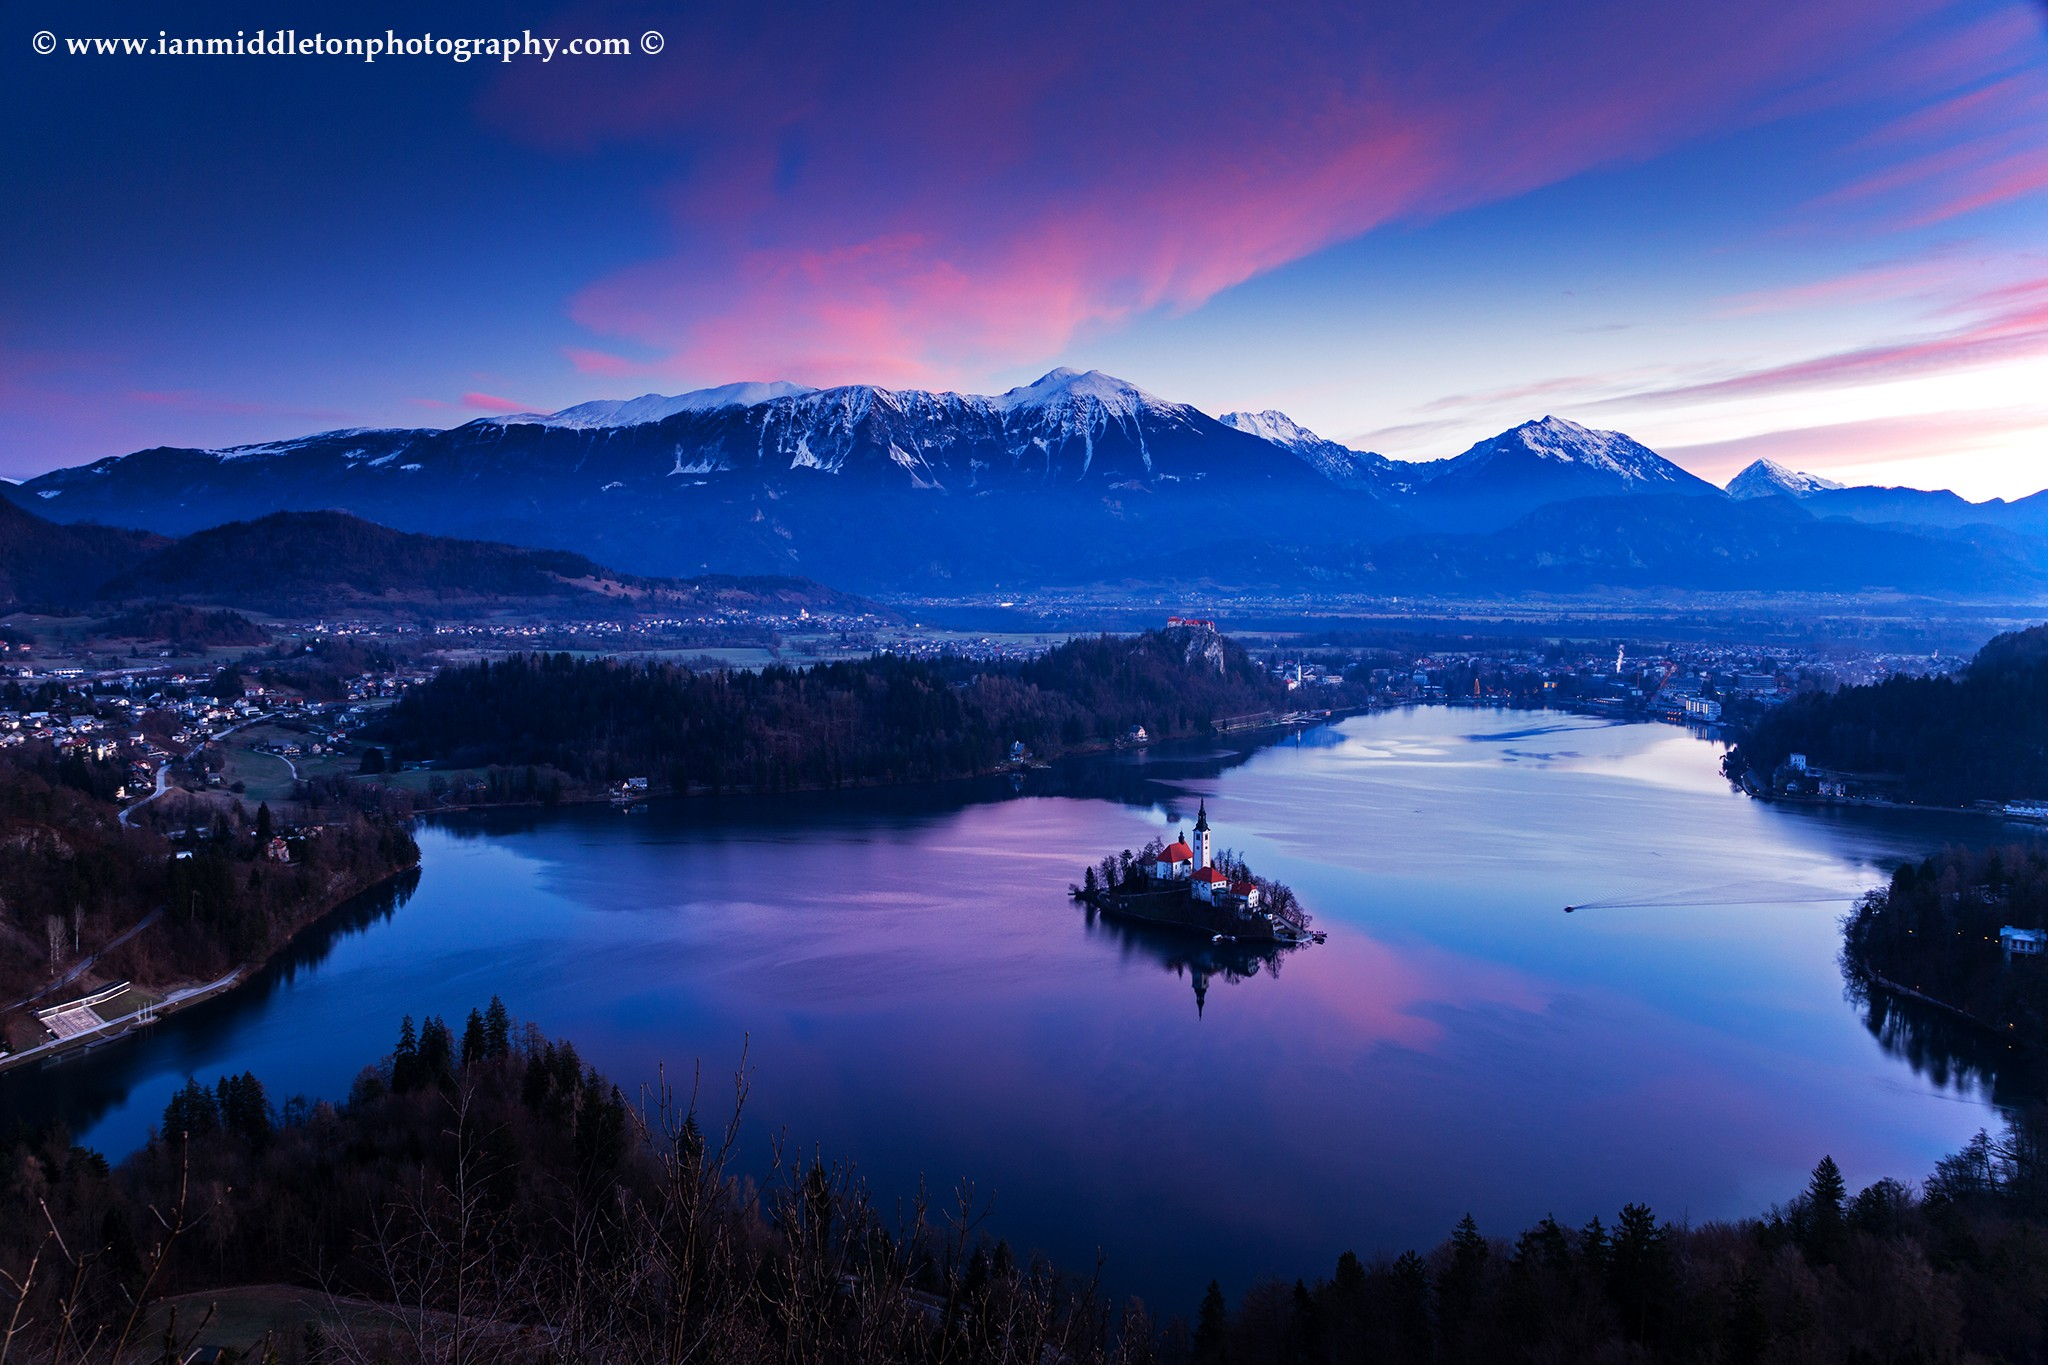 Lake Bled view from Mala Osojnica.